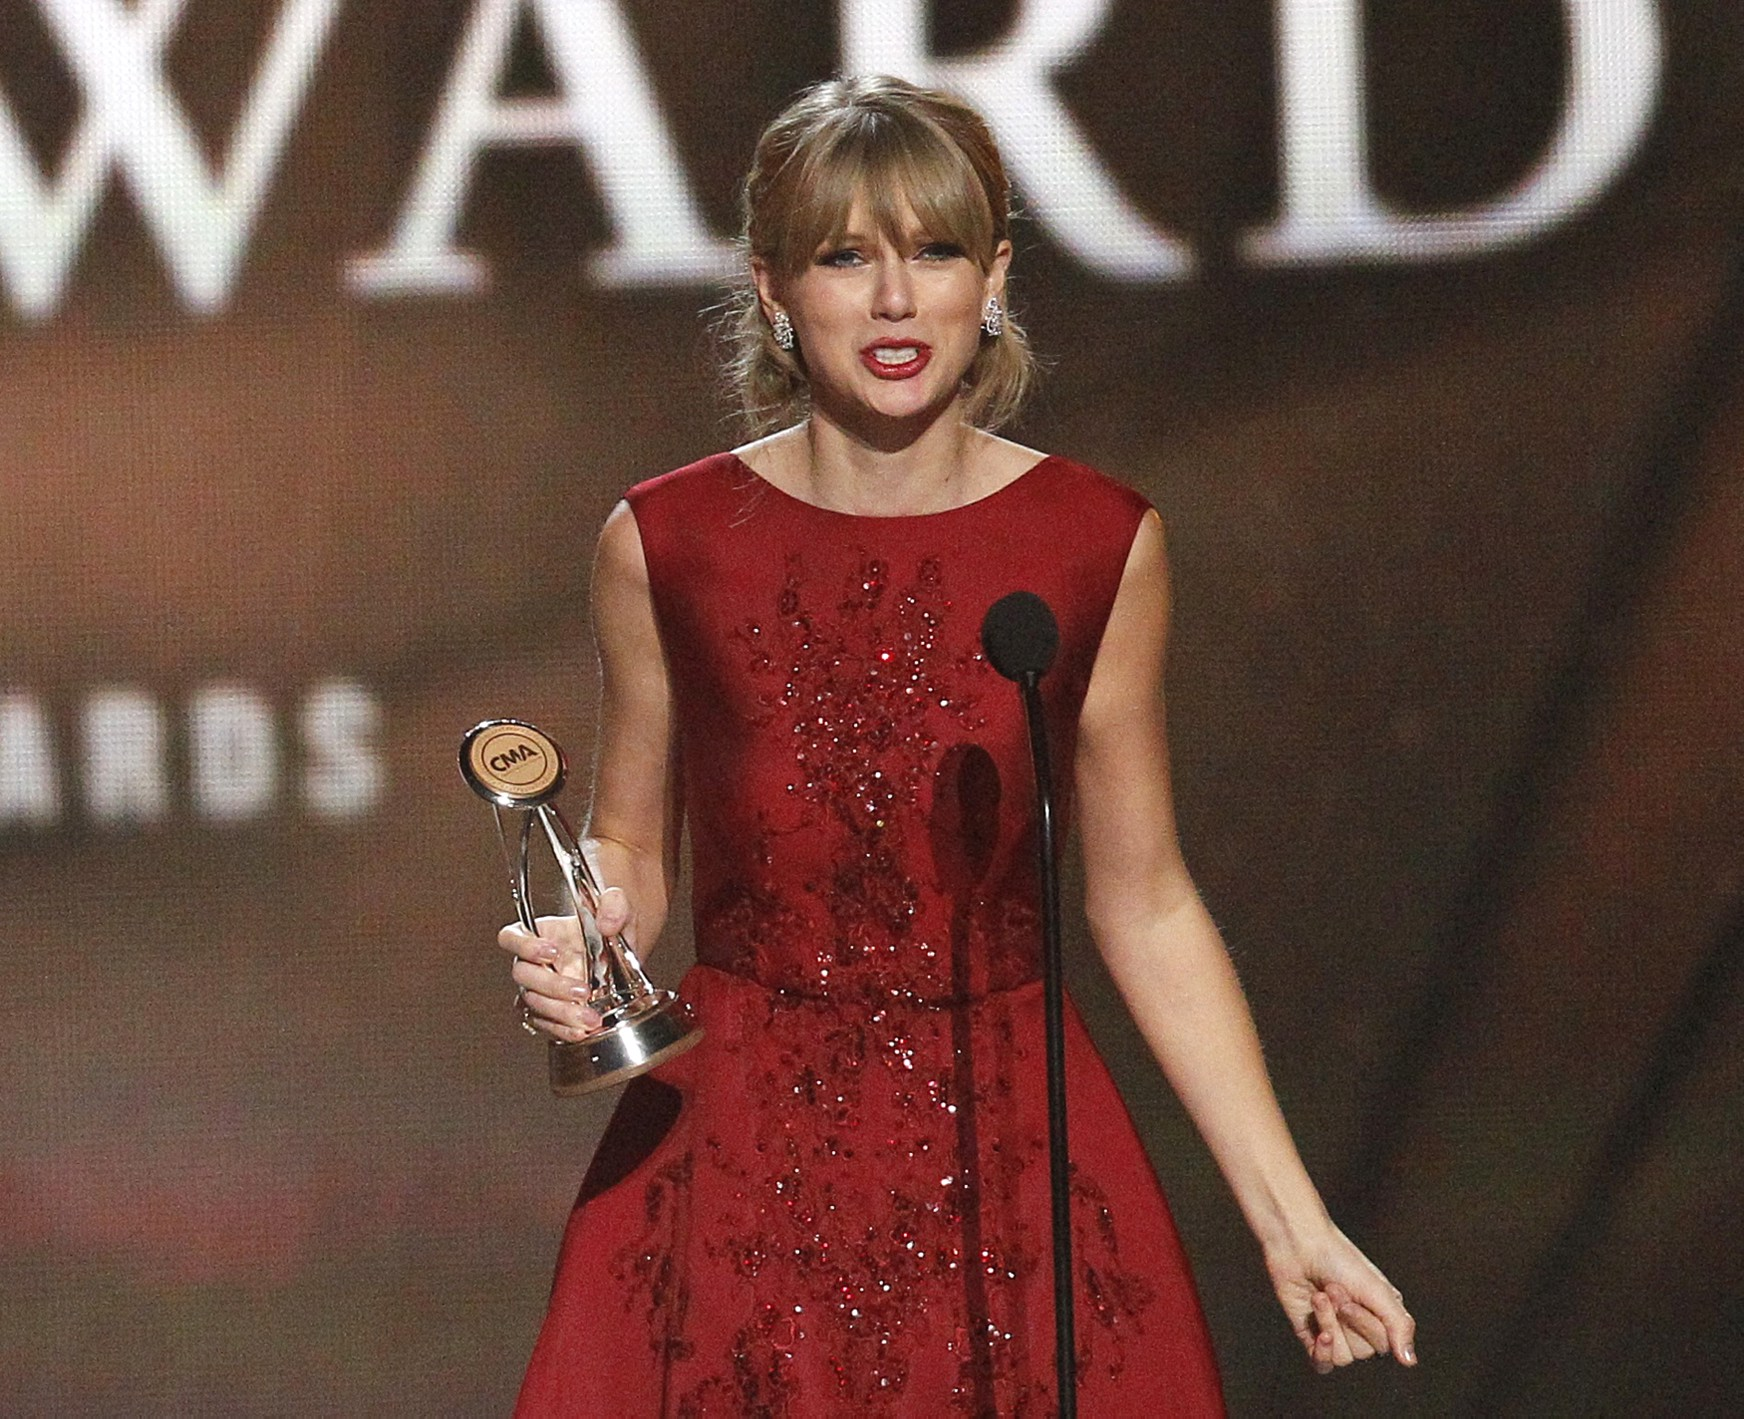 http://www.taylorpictures.net/albums/app/2013/cmaawards/041.jpg